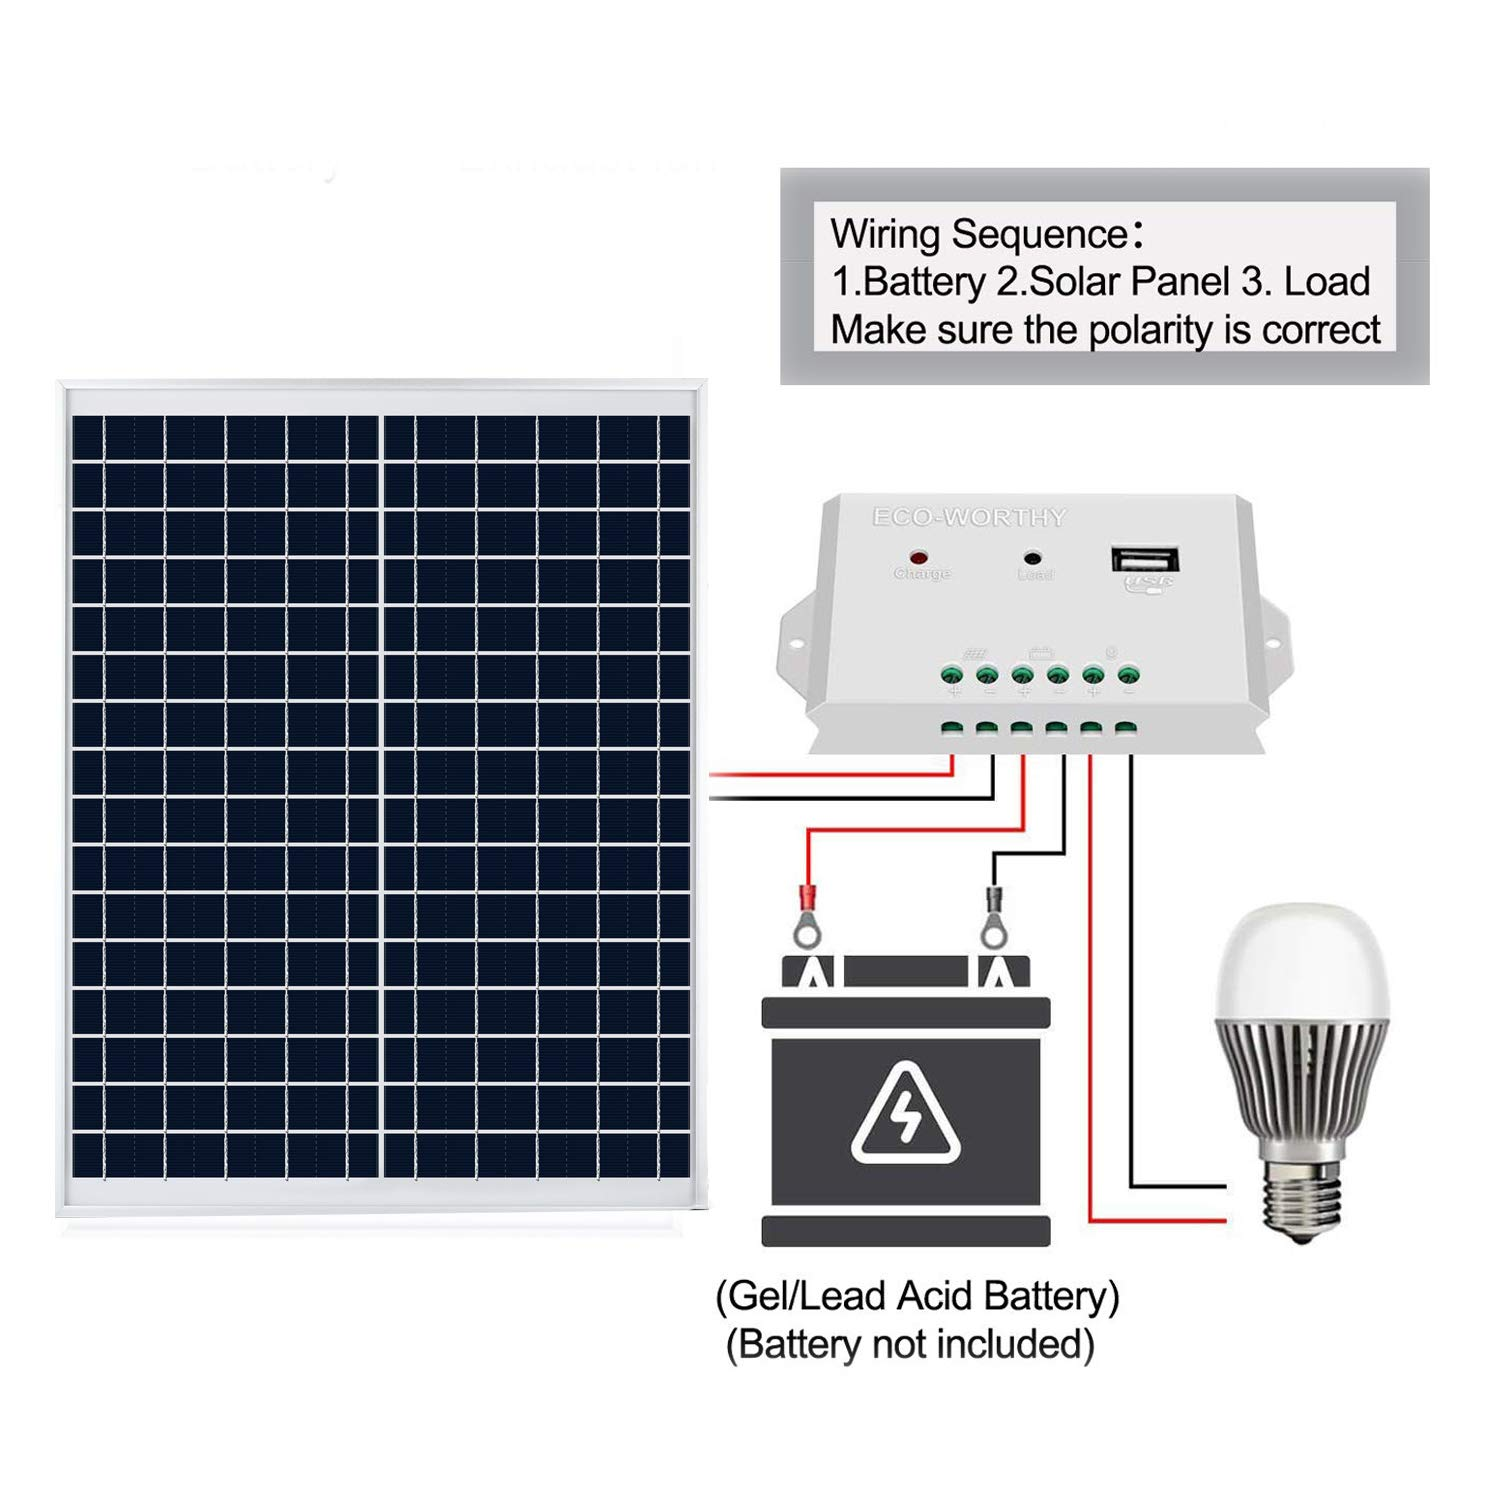 Amazon.com: ECO-WORTHY Panel solar de 10, 20, 30, 50 watts ...